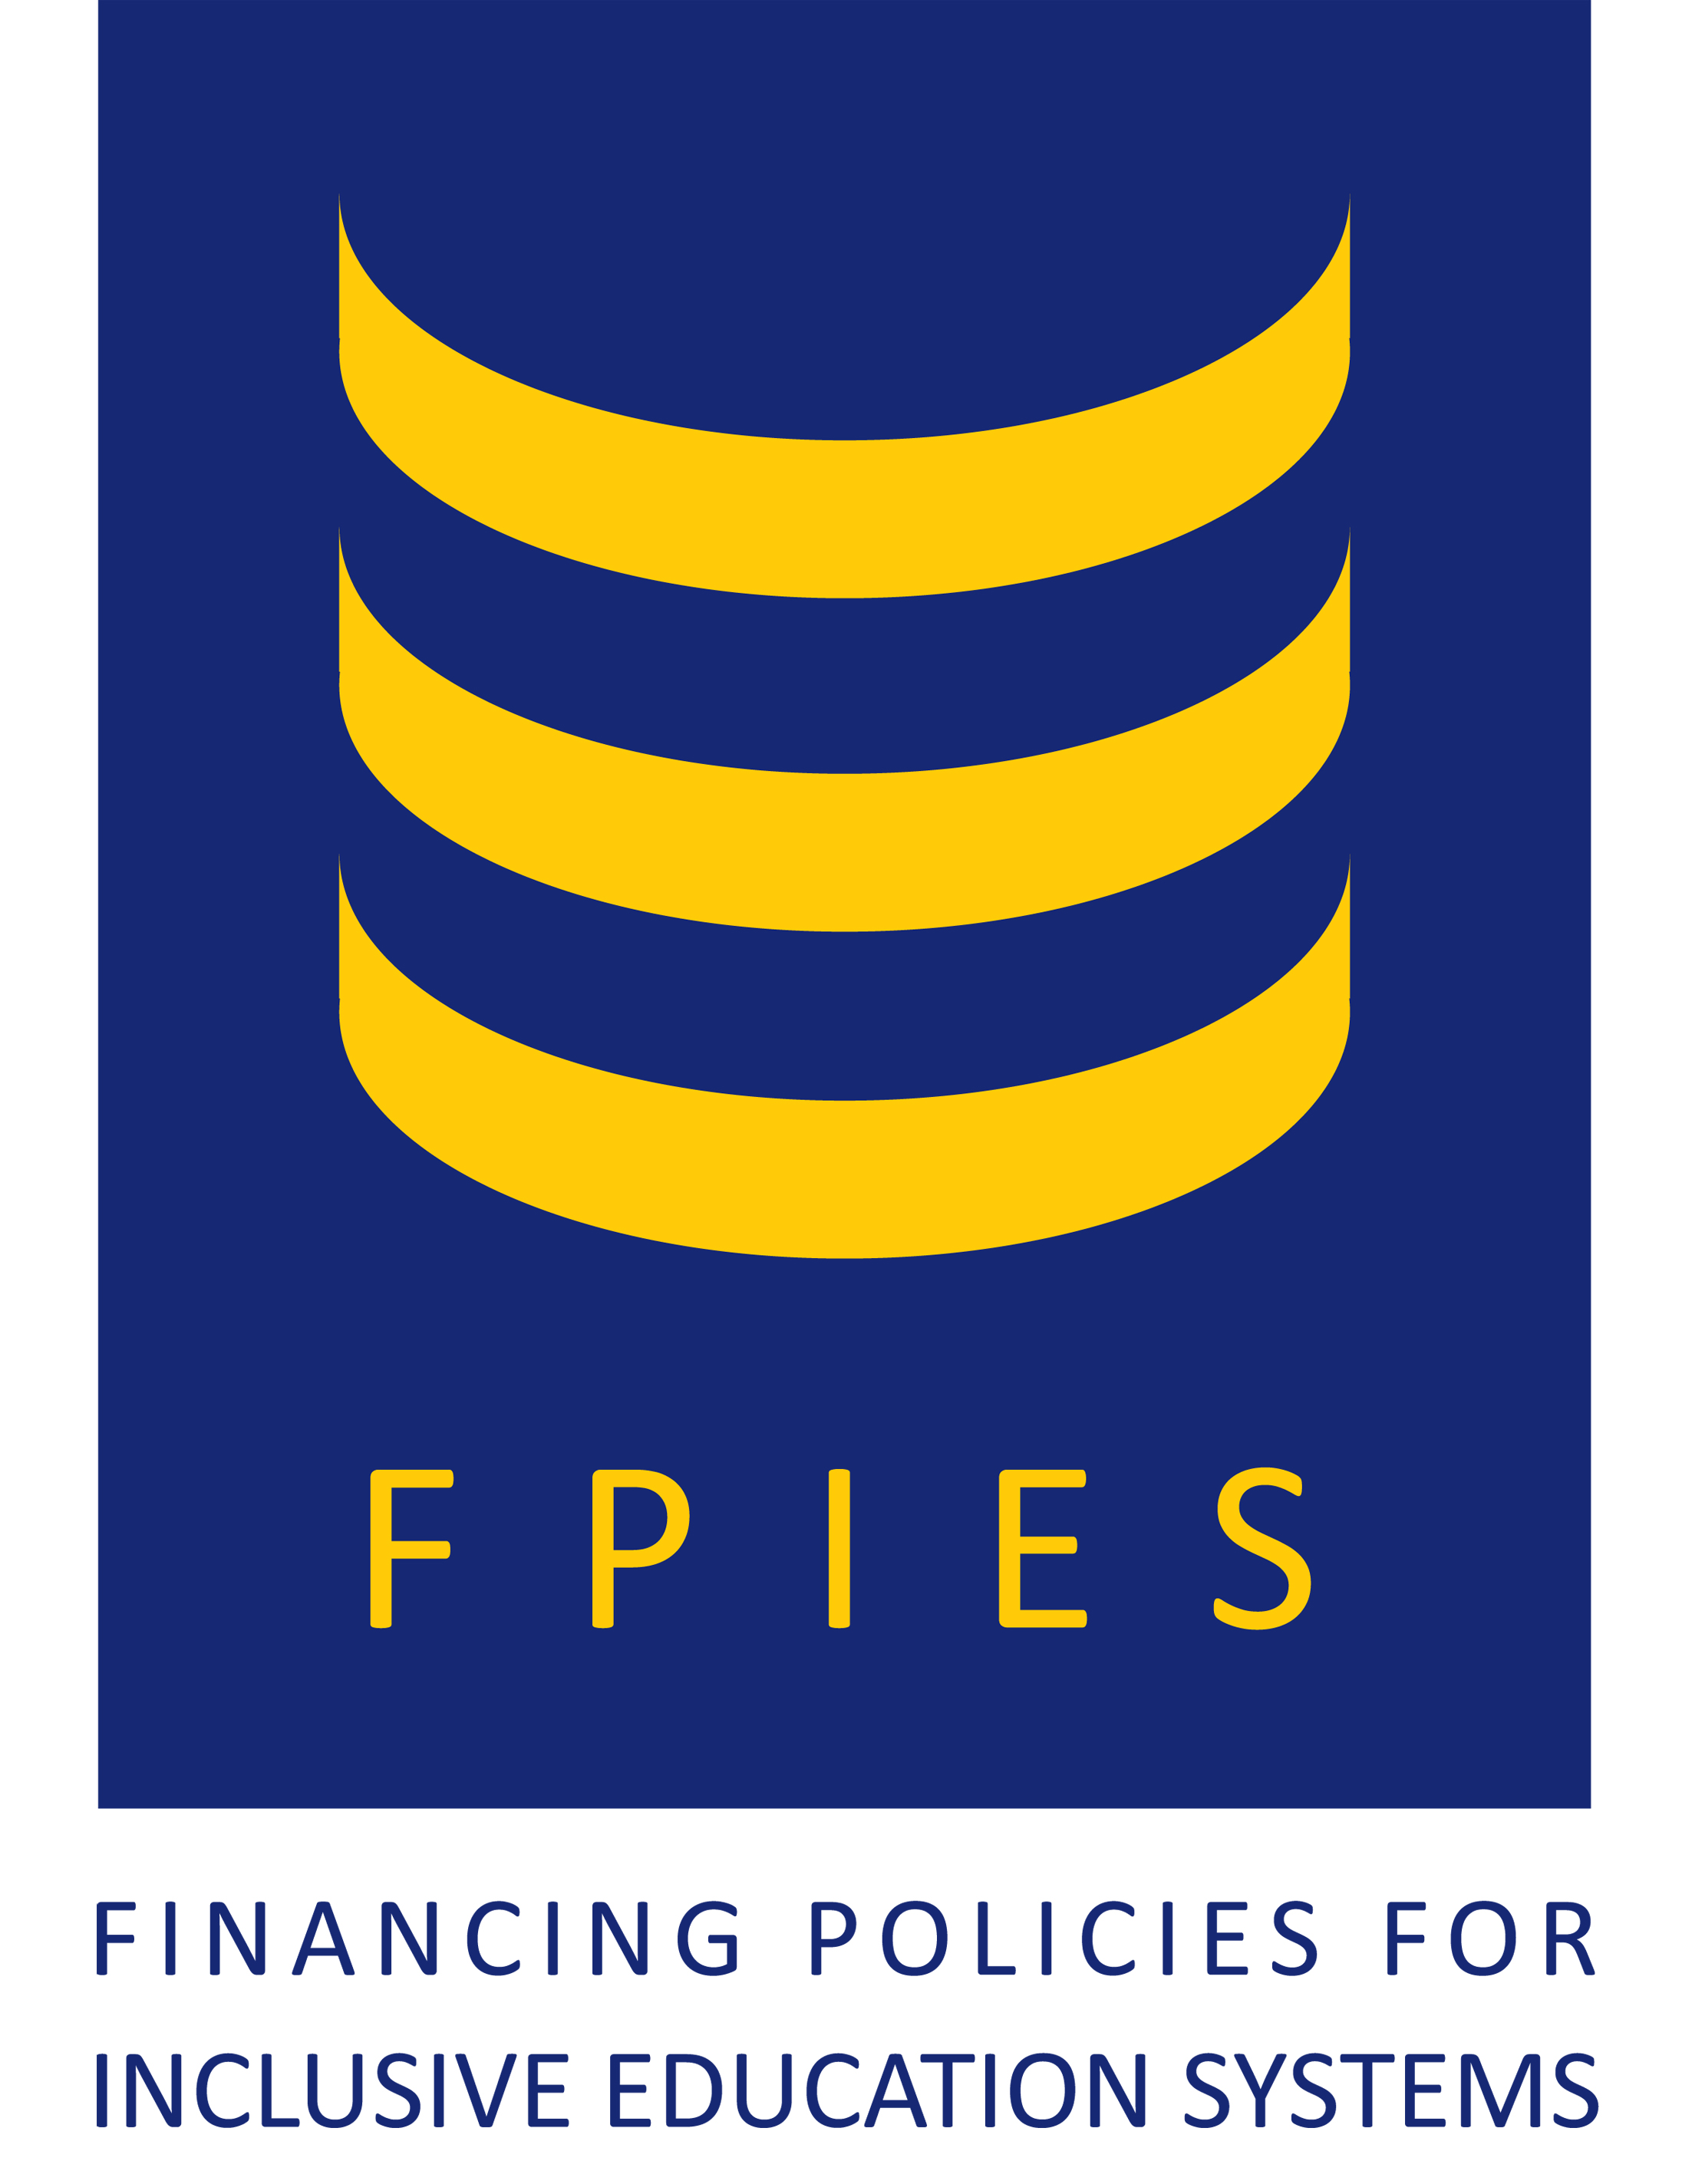 Financing Policies for Inclusive Education Systems (FPIES) Logo